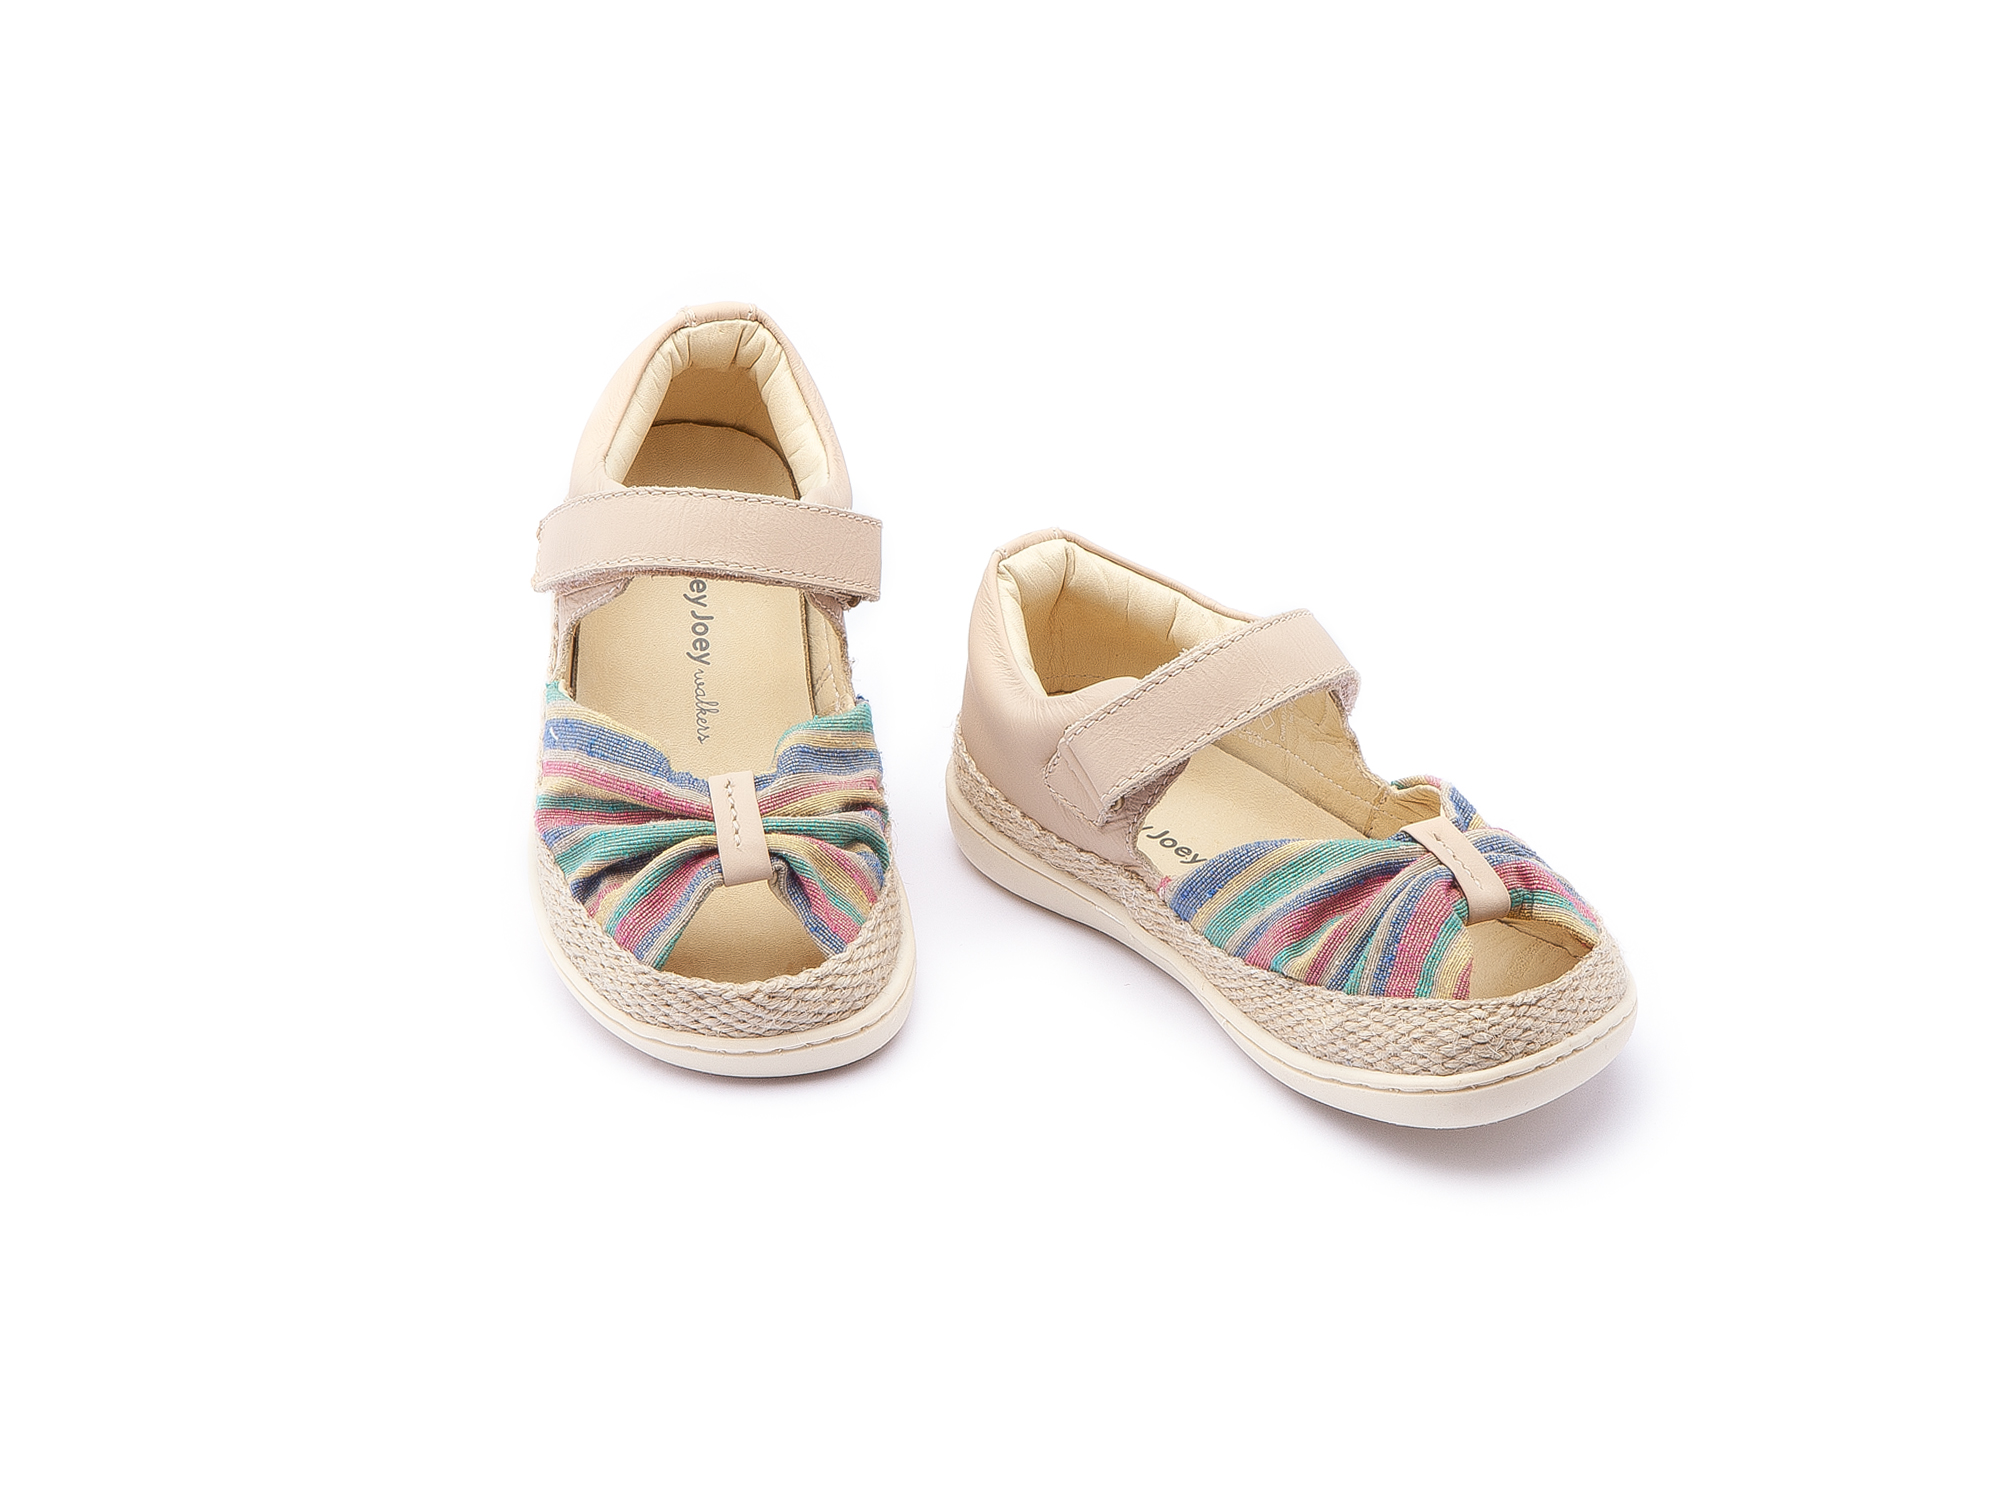 Sandália Little Coast Rainbow Canvas/ Yogurt Toddler 2 à 4 anos - 1